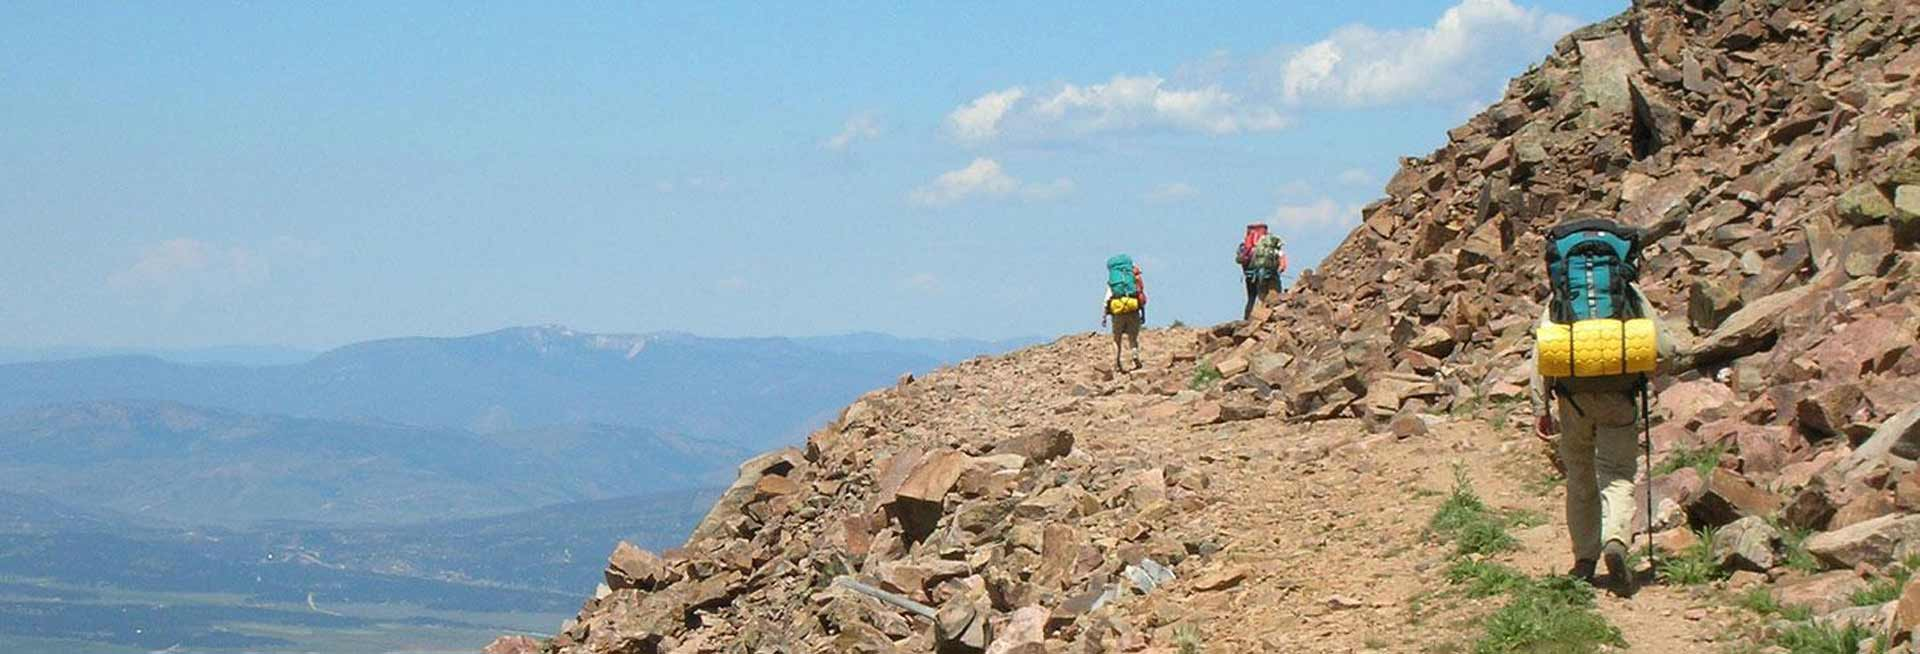 Hikers on a rocky trail.